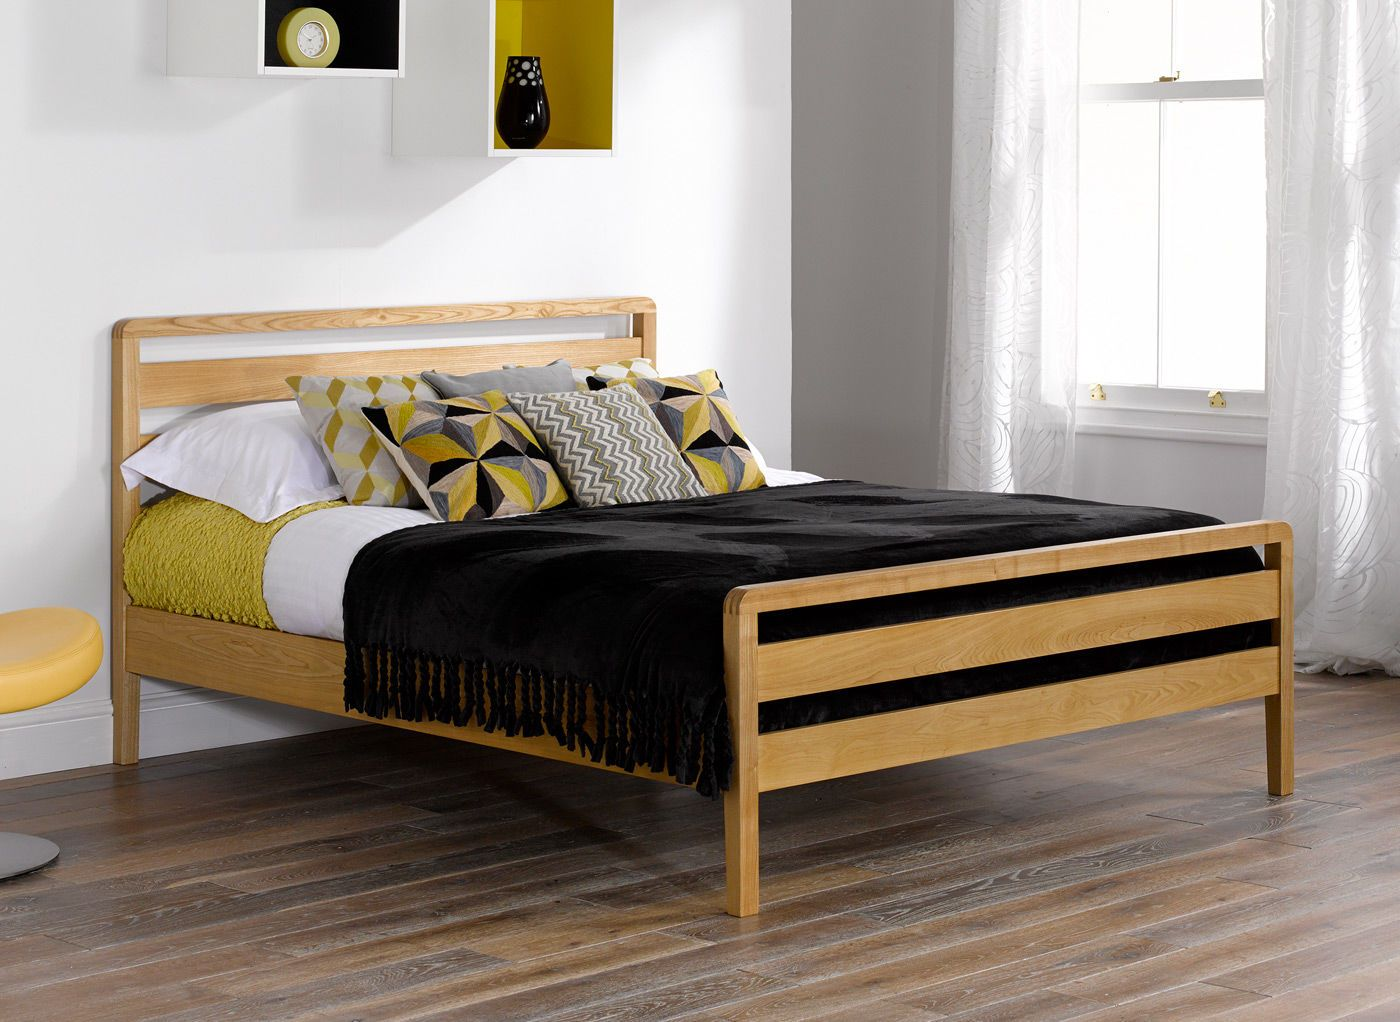 SPECTACULAR SAVING - Save £220 on our Earlswood bed frame. | Kids ...